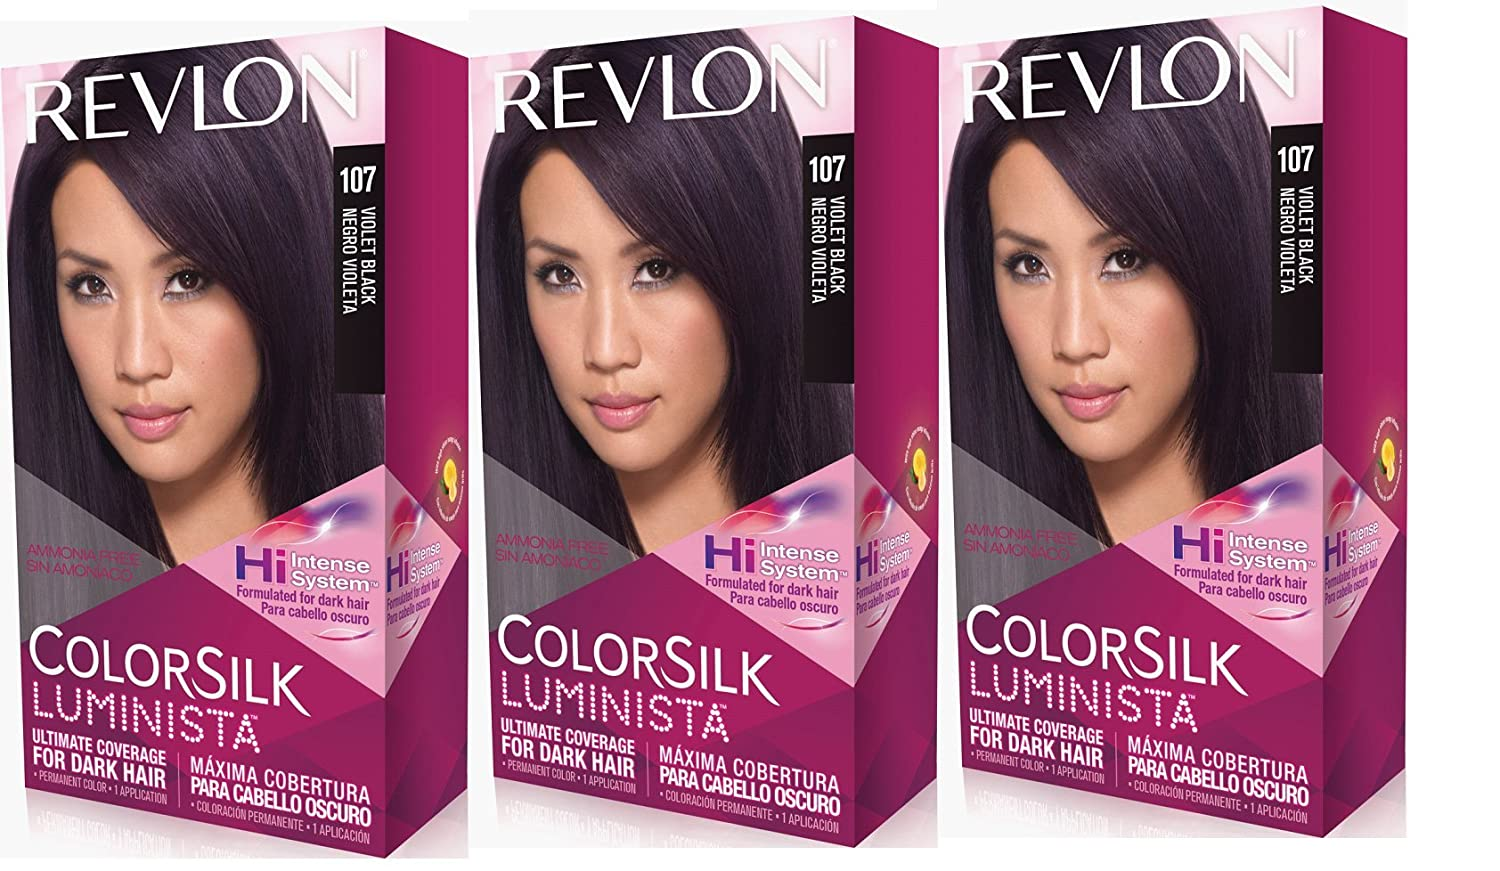 Amazon.com : Revlon Colorsilk Luminista Haircolor, Dark Chocolate Brown, 3 Count : Beauty